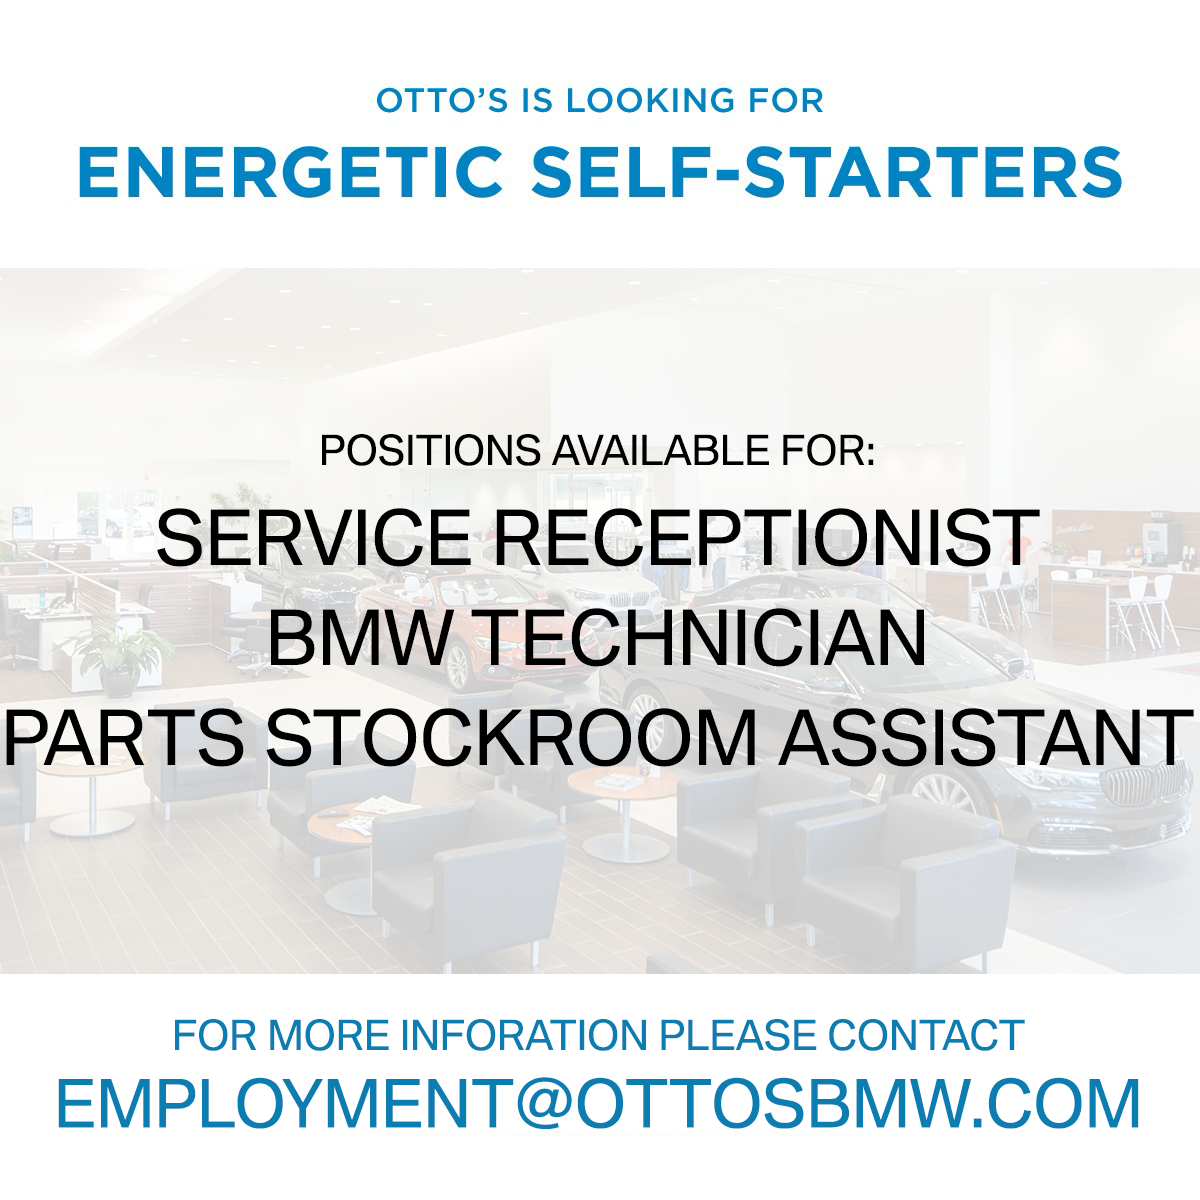 Otto's BMW is hiring for Service Receptionist, BMW Technician, and Parts Stockroom Assistant.